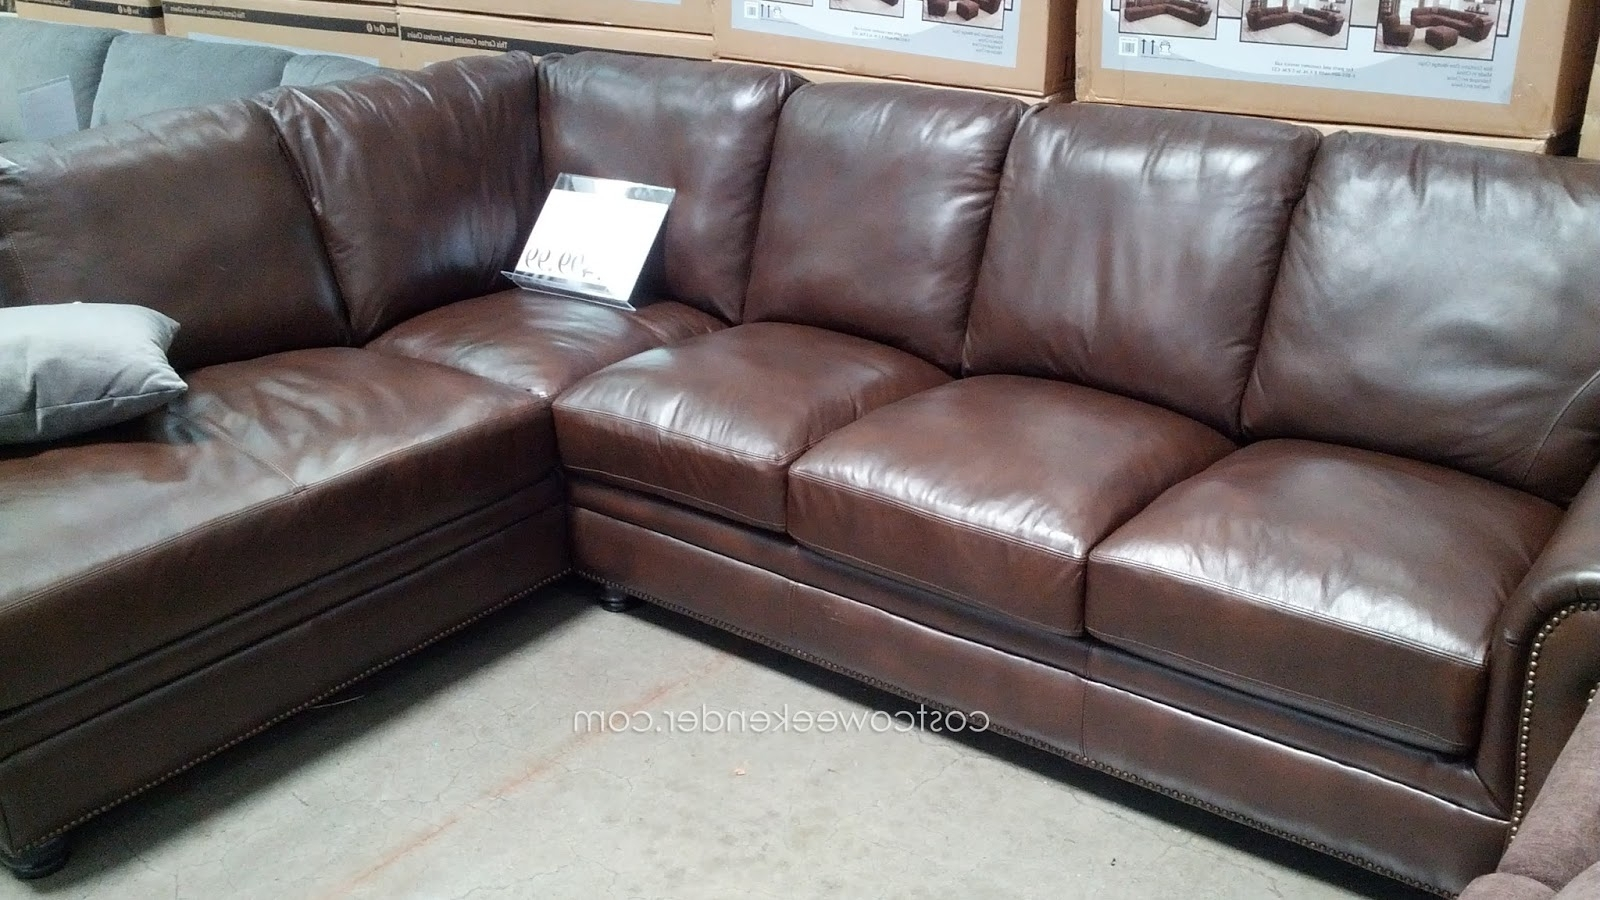 Sectional Sofas At Costco Intended For Most Recently Released Sectional Sofa Design: Costco Sectional Sofas Best Ever Leather (View 10 of 15)